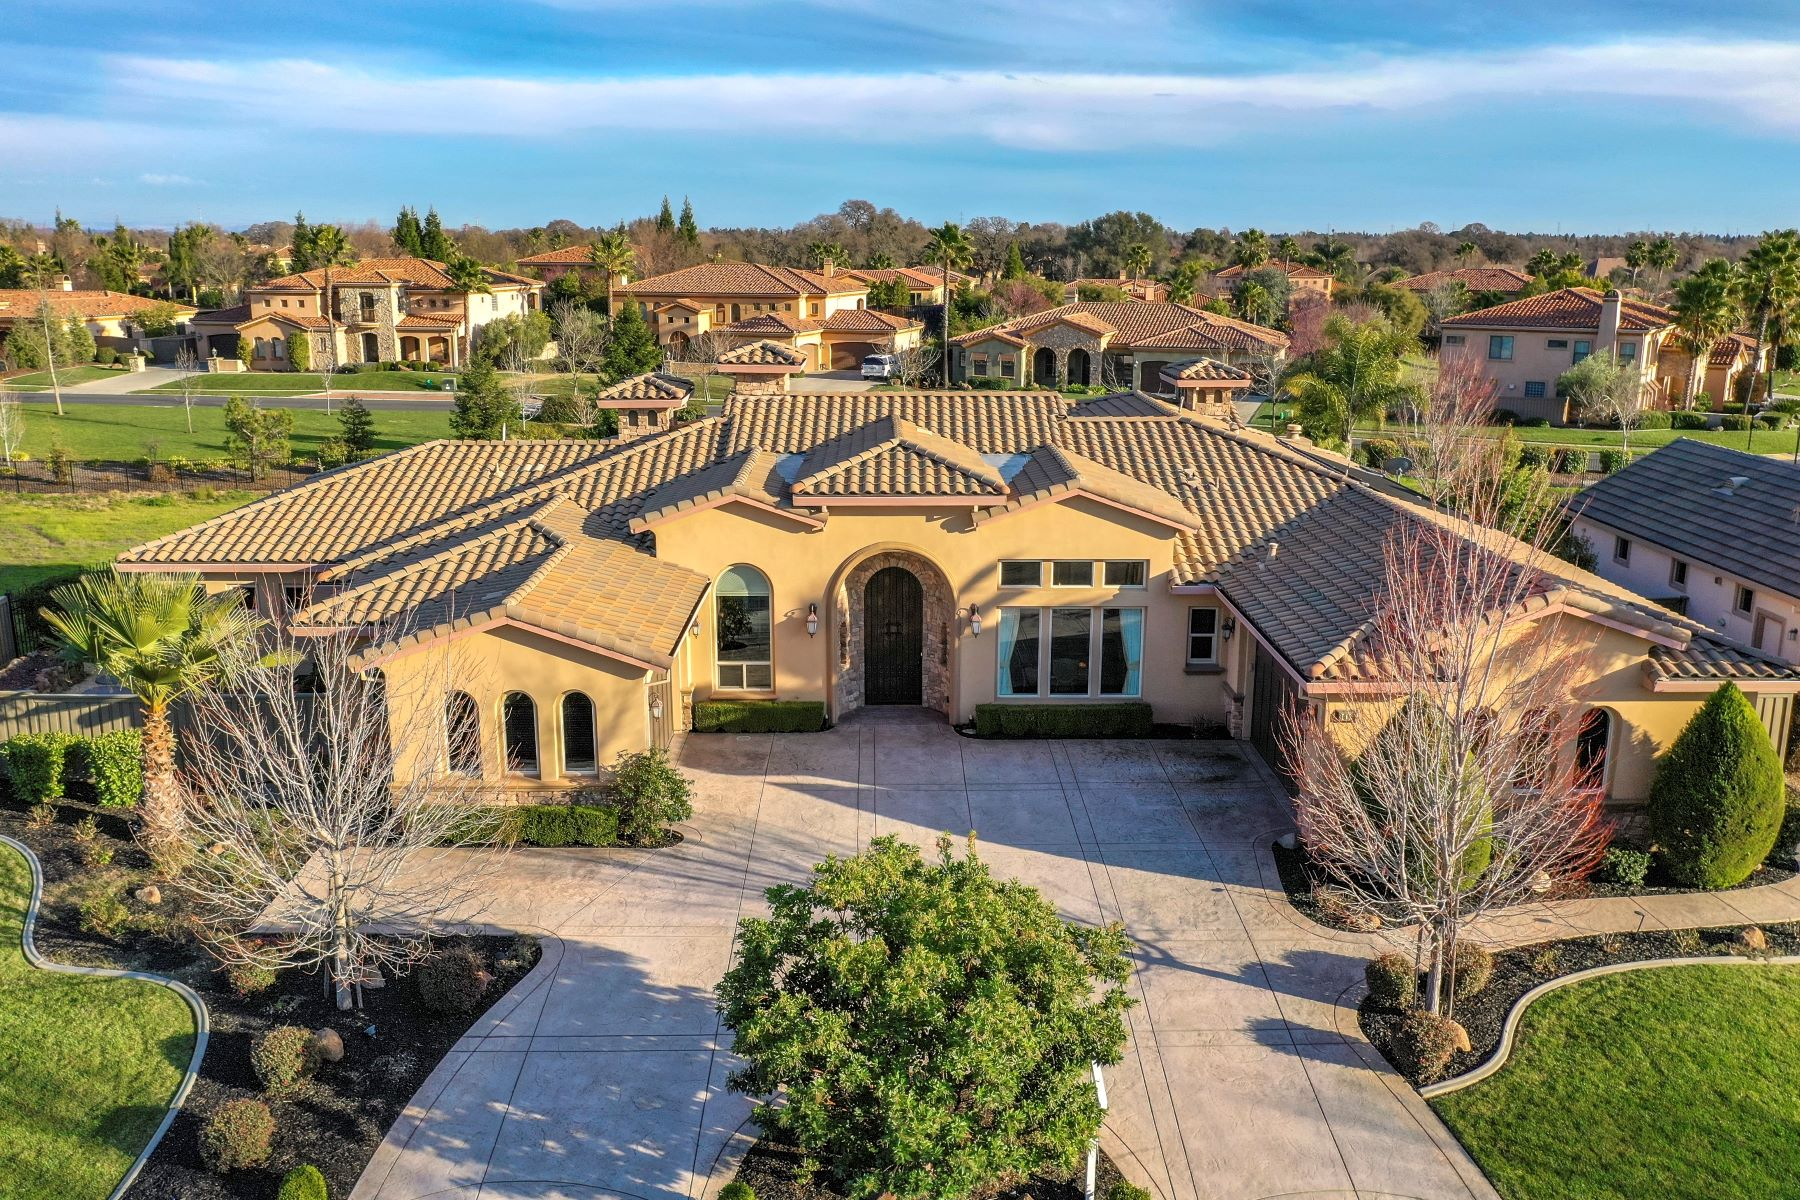 Single Family Homes for Sale at 8618 Hawkstone Court, Roseville, CA 95747 8618 Hawkstone Court Roseville, California 95747 United States